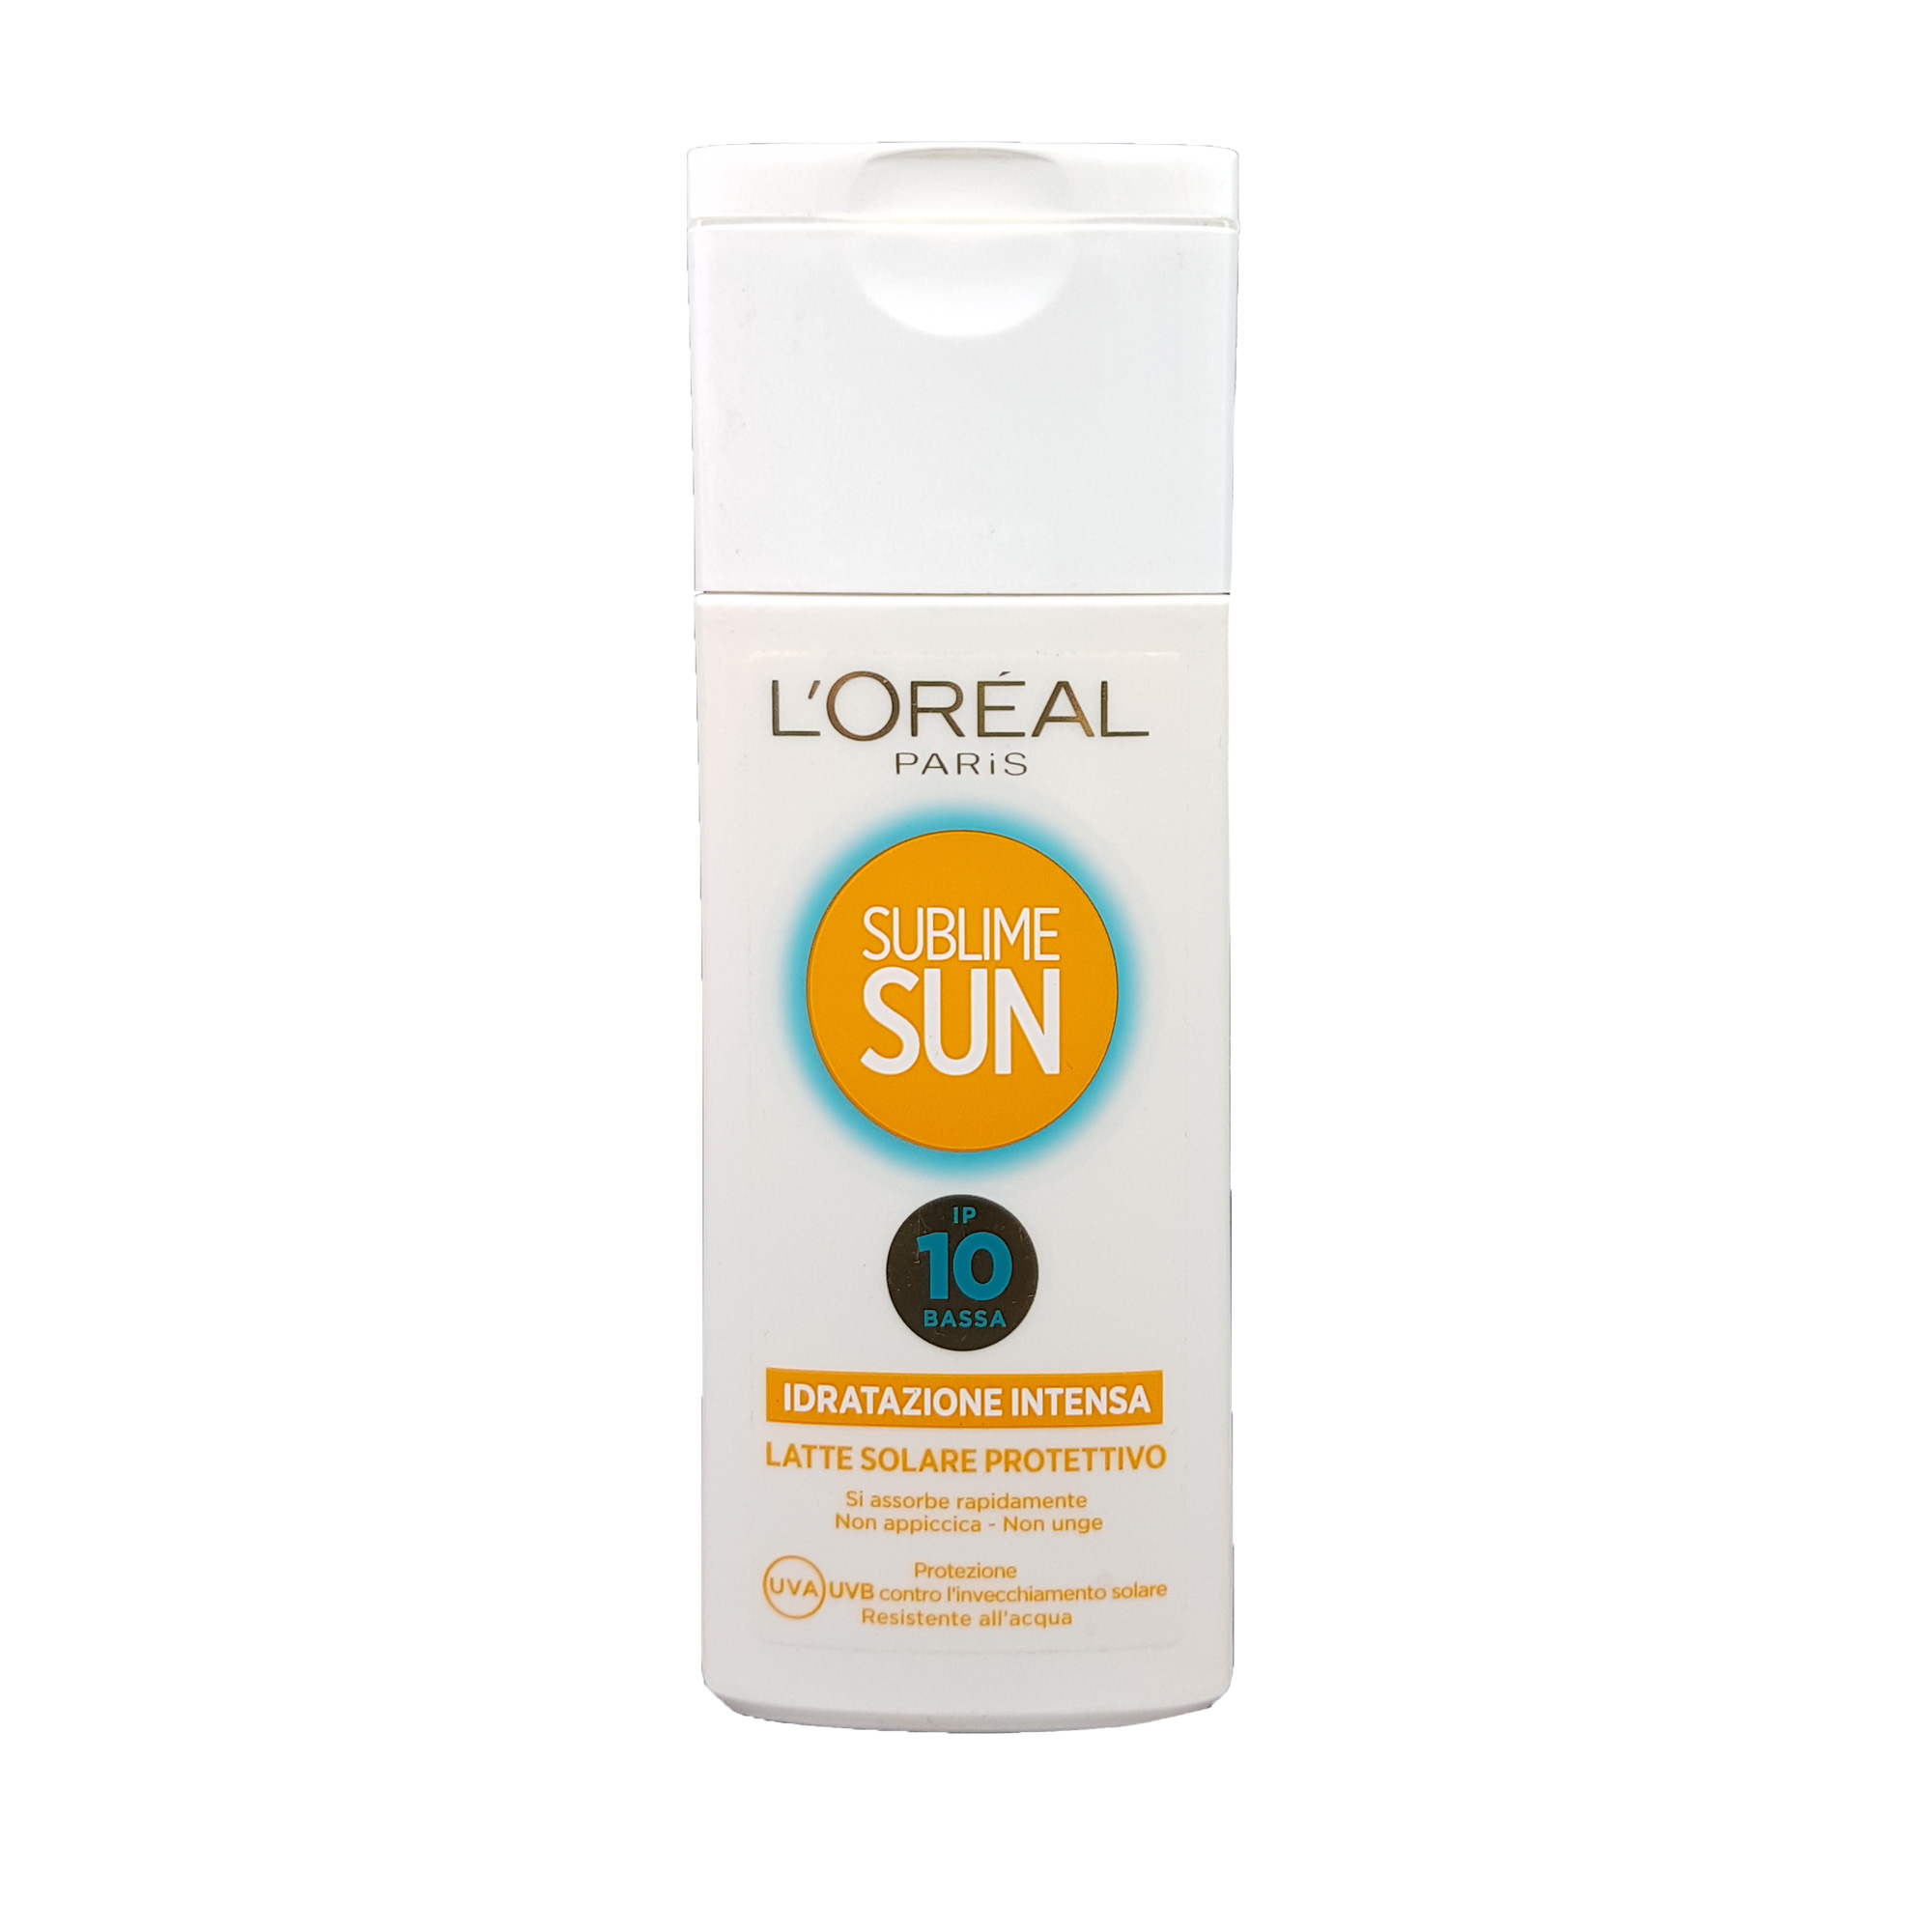 Lapte solar L'oreal Sublime Sun SPF 10-200 ml